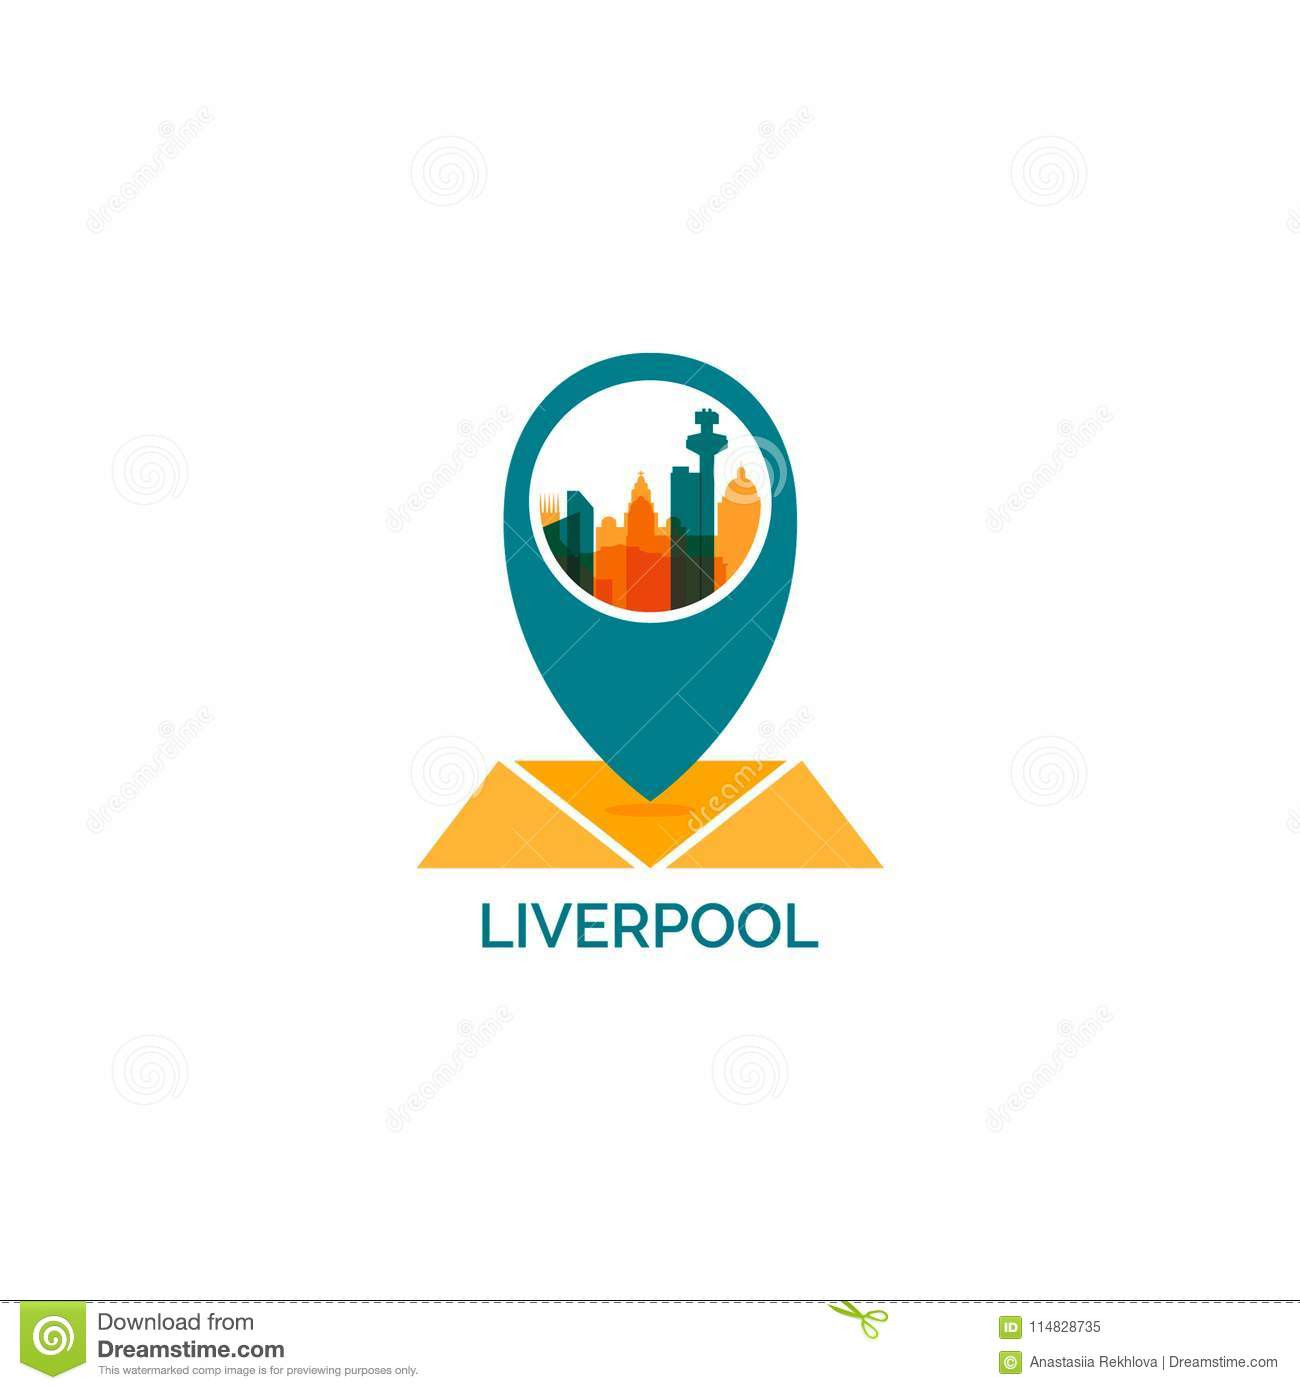 Liverpool City Skyline Silhouette Vector Logo Illustration